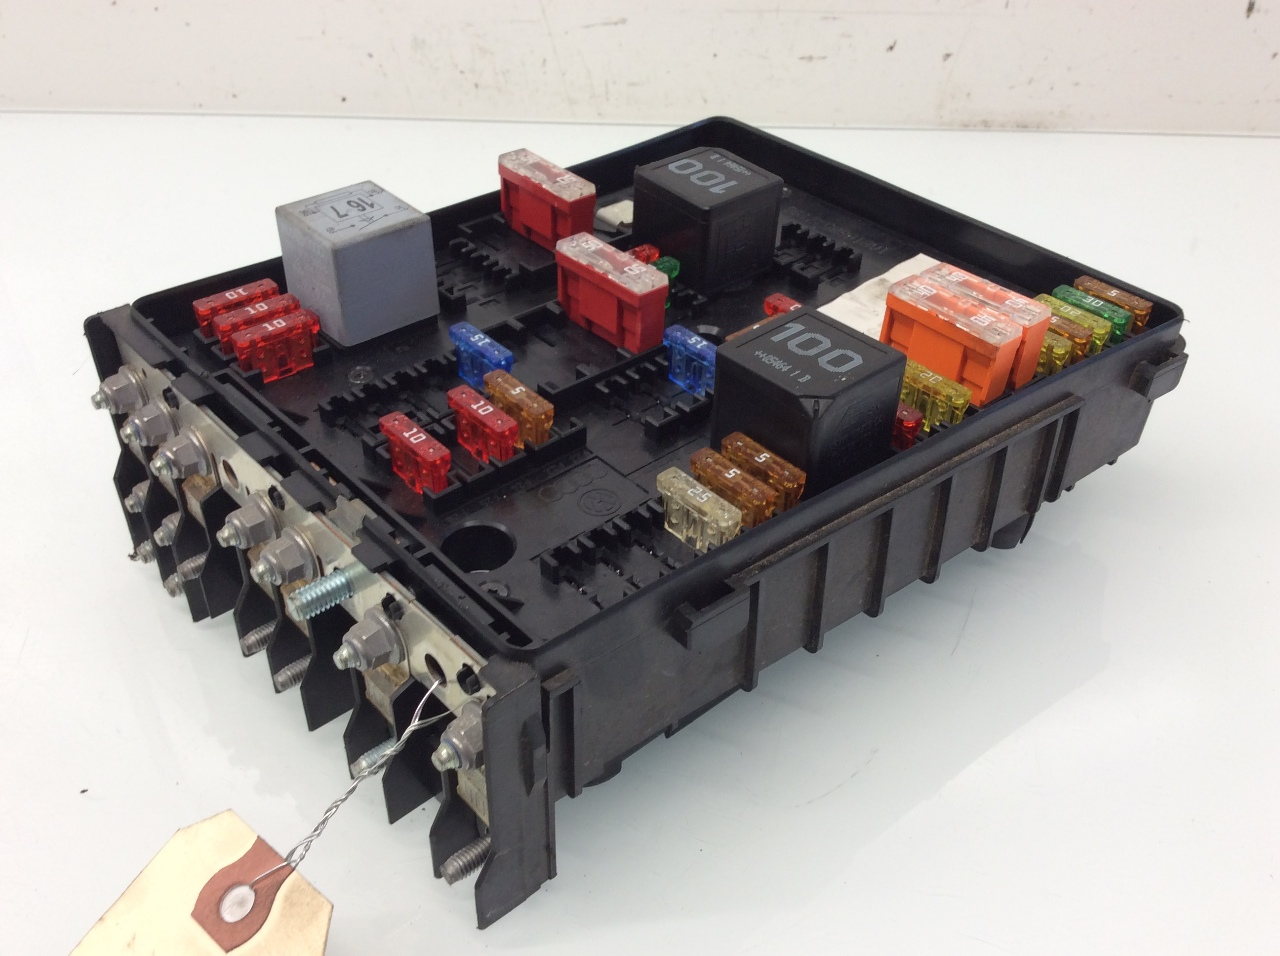 hight resolution of 2007 2008 volkswagen eos engine fuse box relay 1k0937124k vw eos fuse box layout vw eos